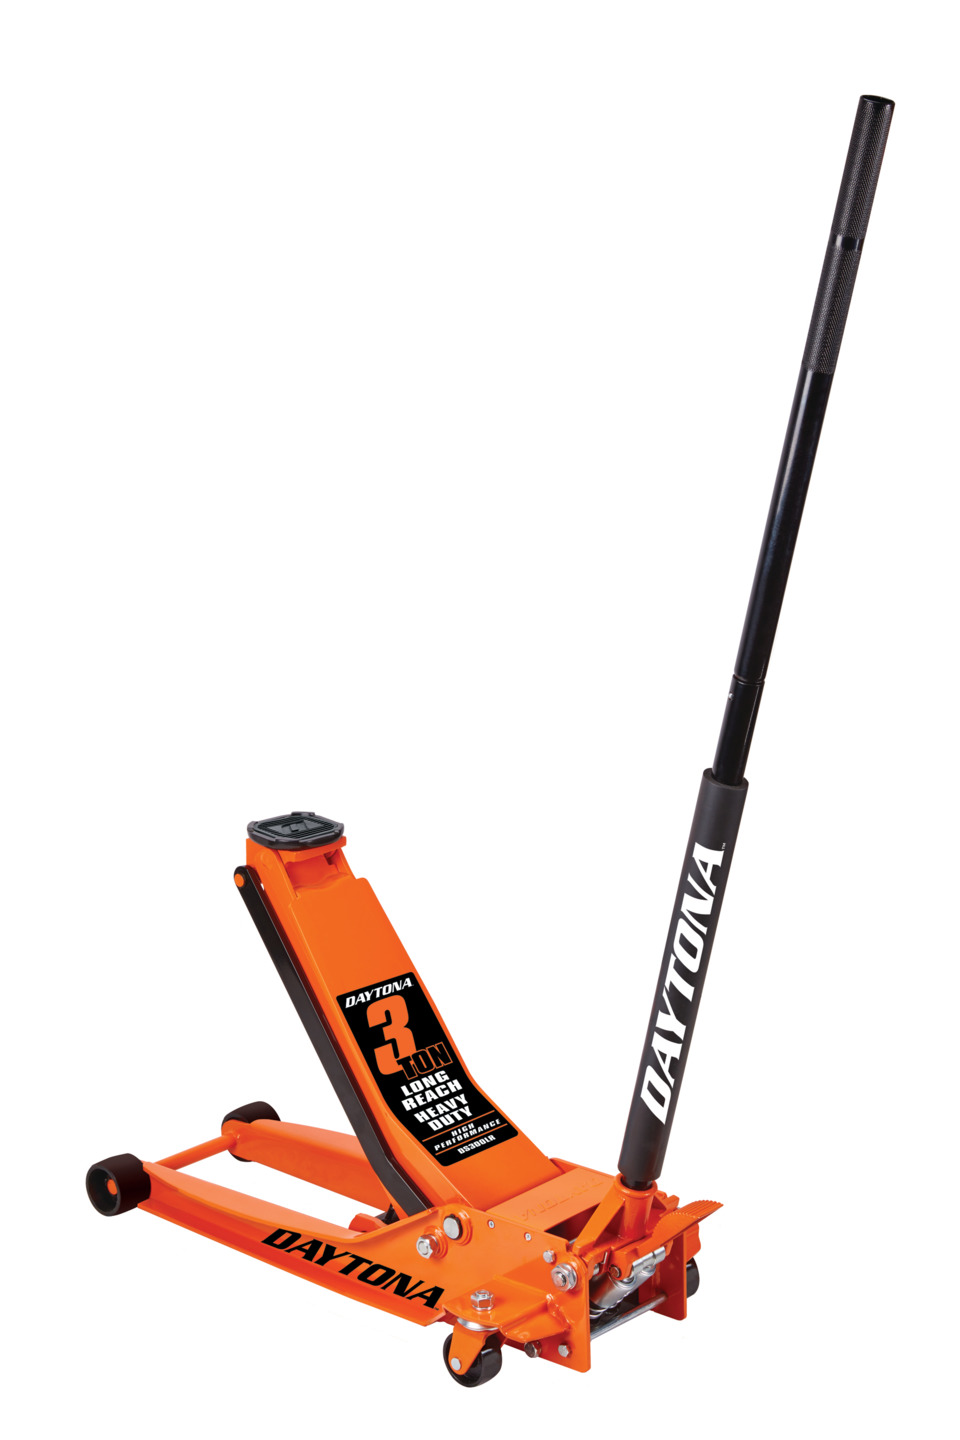 Harbor Freight 3 Ton Low Profile Long Reach Floor Jack In